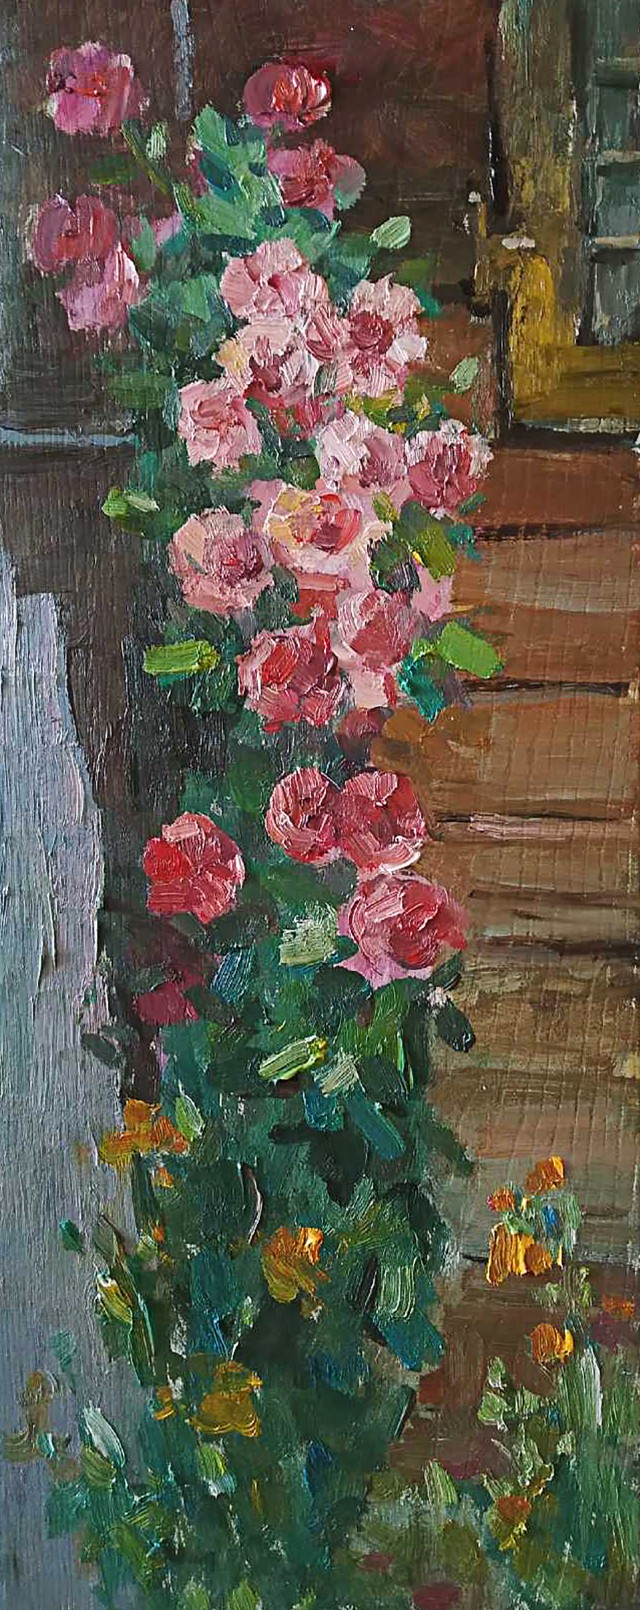 Blossoming Of Roses